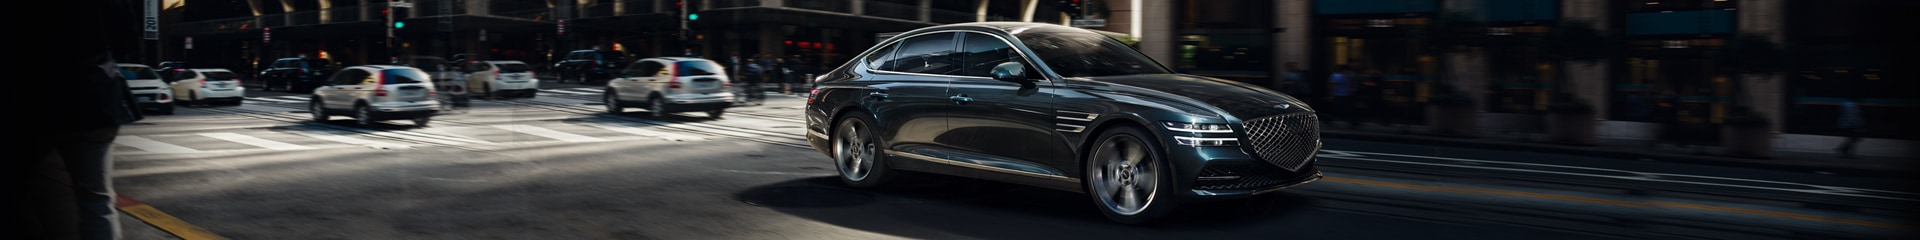 GENESIS G80 Performance Features - PERFORMANCE